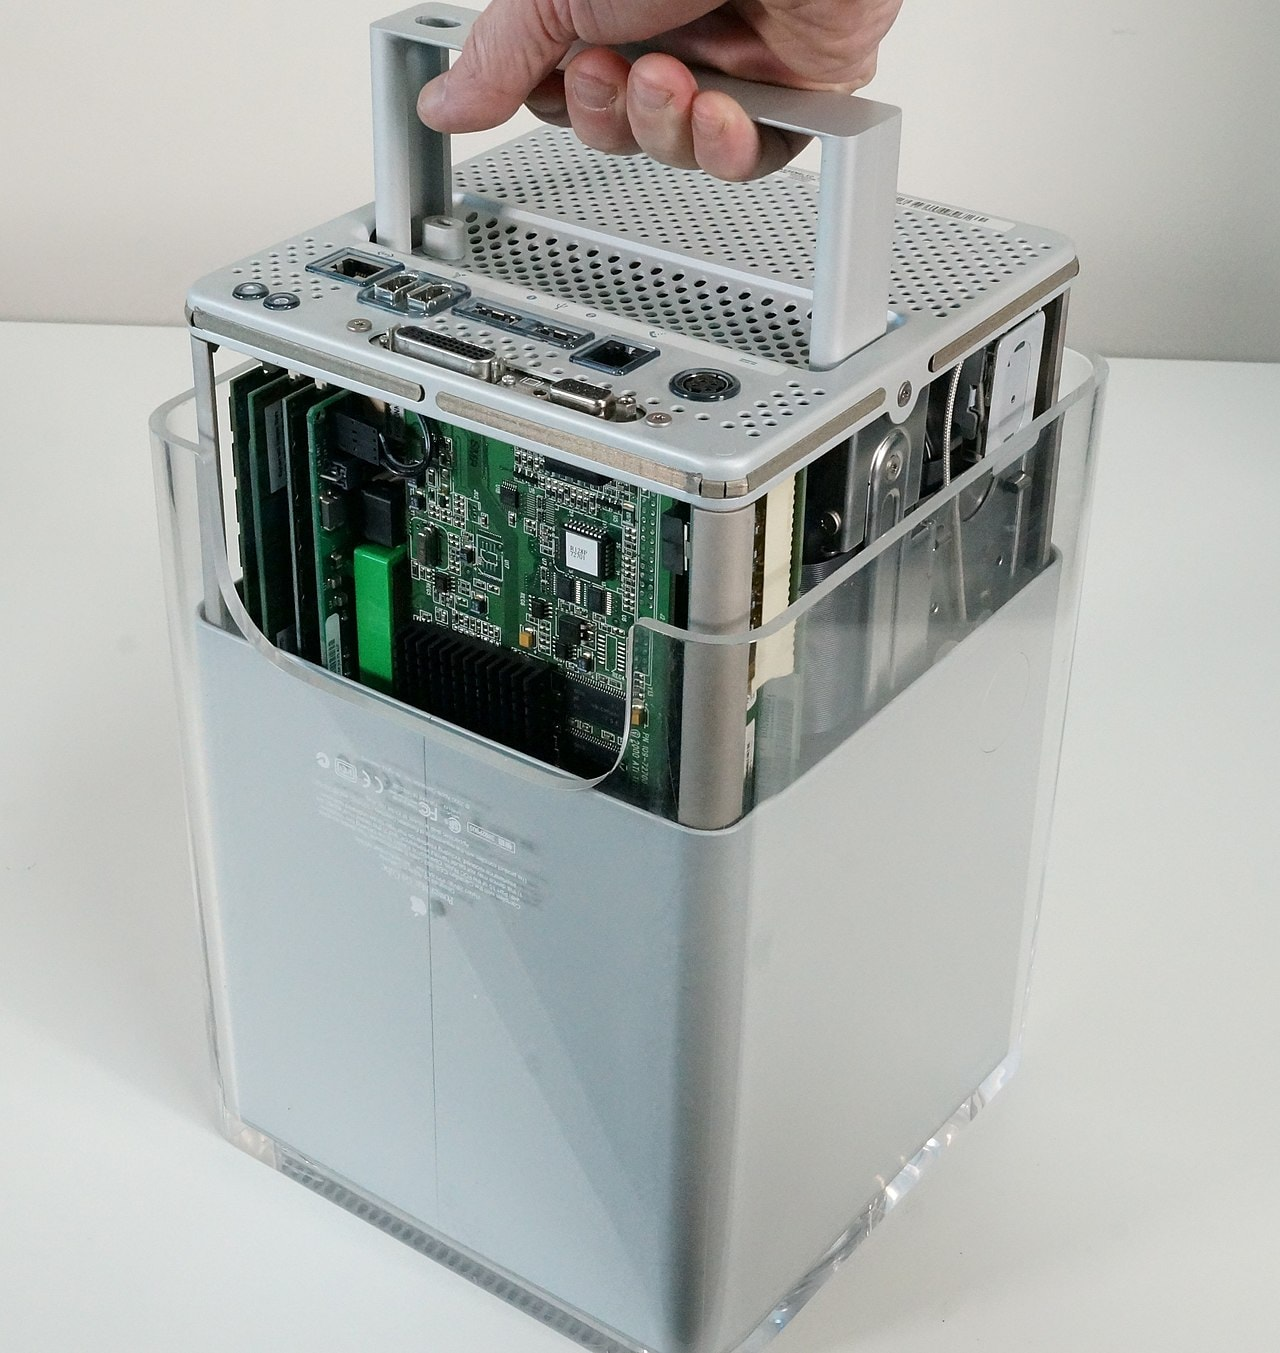 As with the new 2019 Mac Pro design, the guts of Apple Power Mac G4 Cube were easy to access.